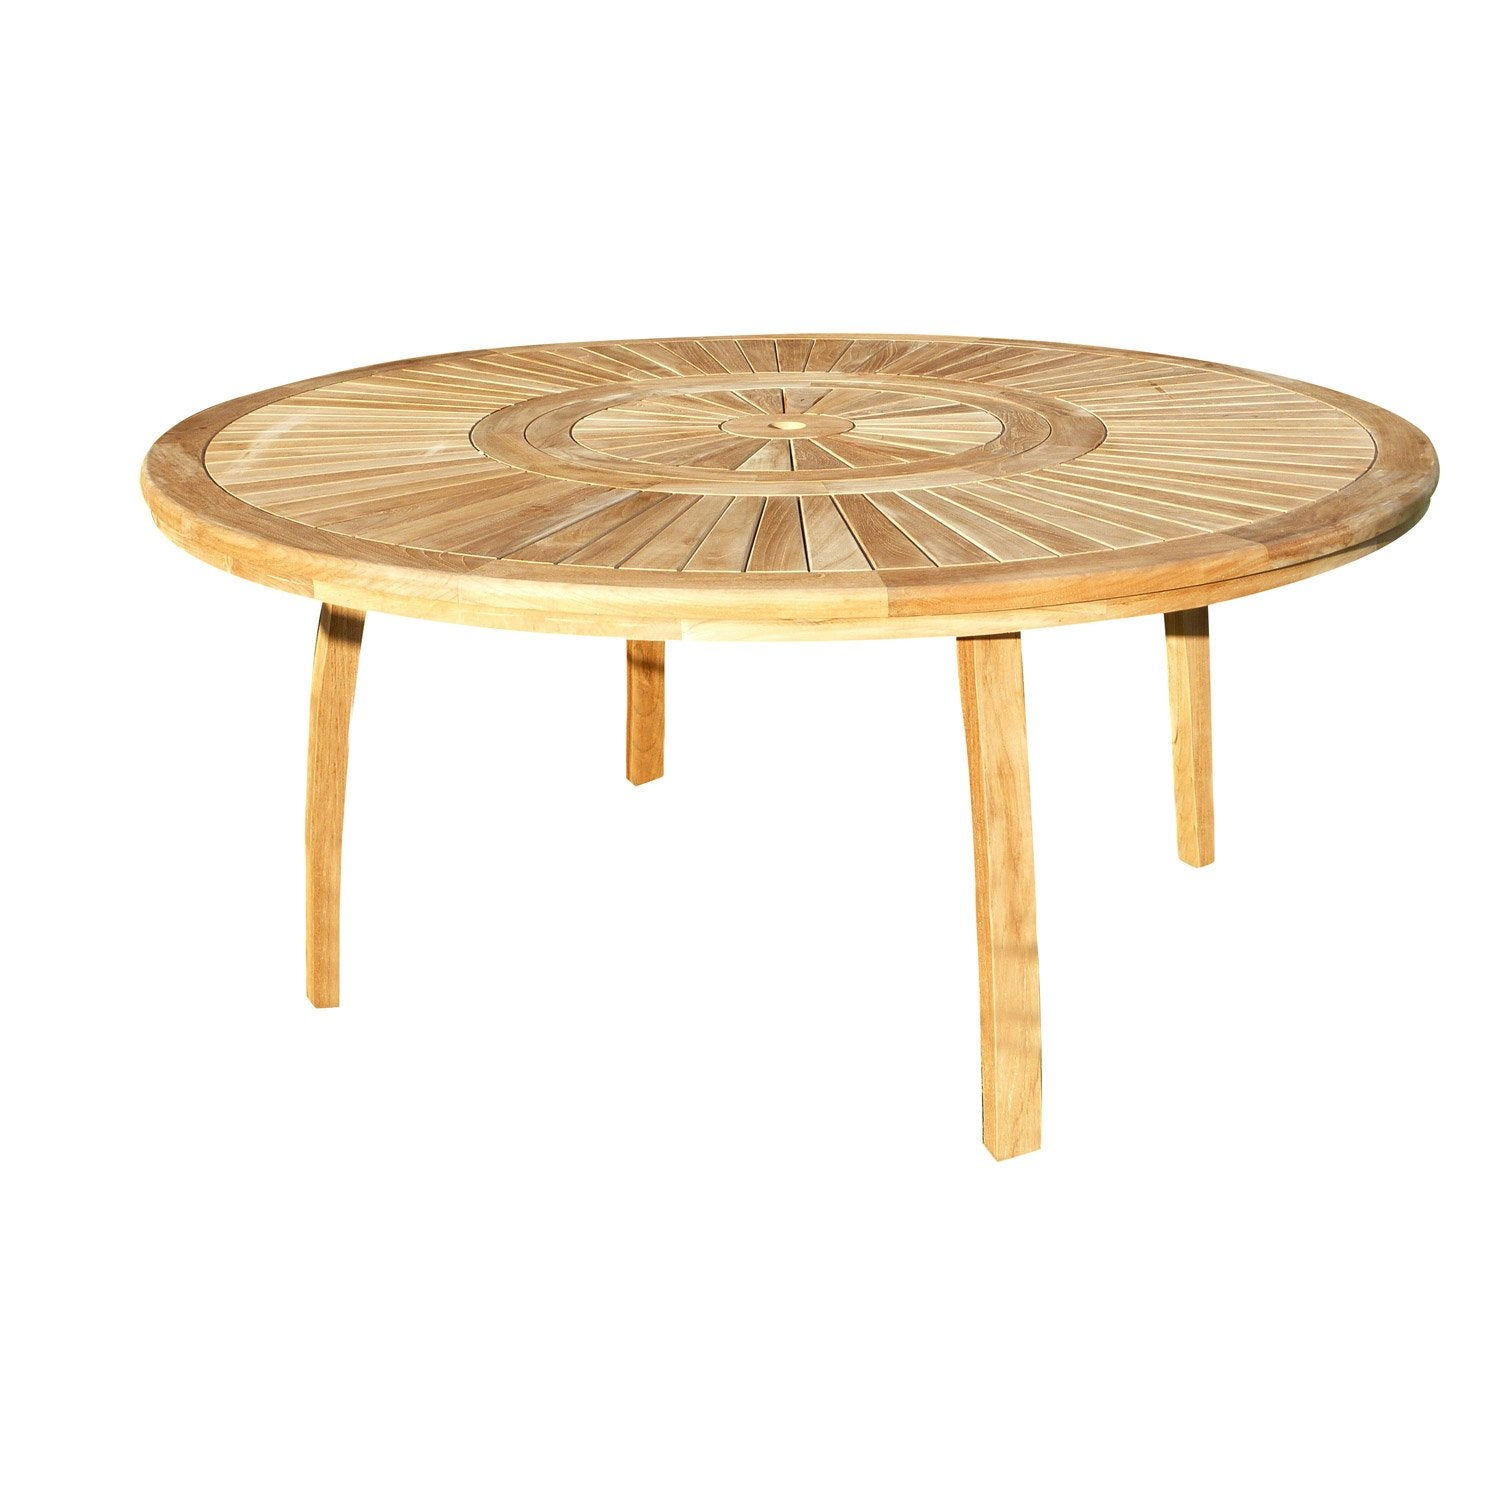 Table de jardin orion ronde naturel 8 personnes leroy merlin for Leroy merlin table jardin